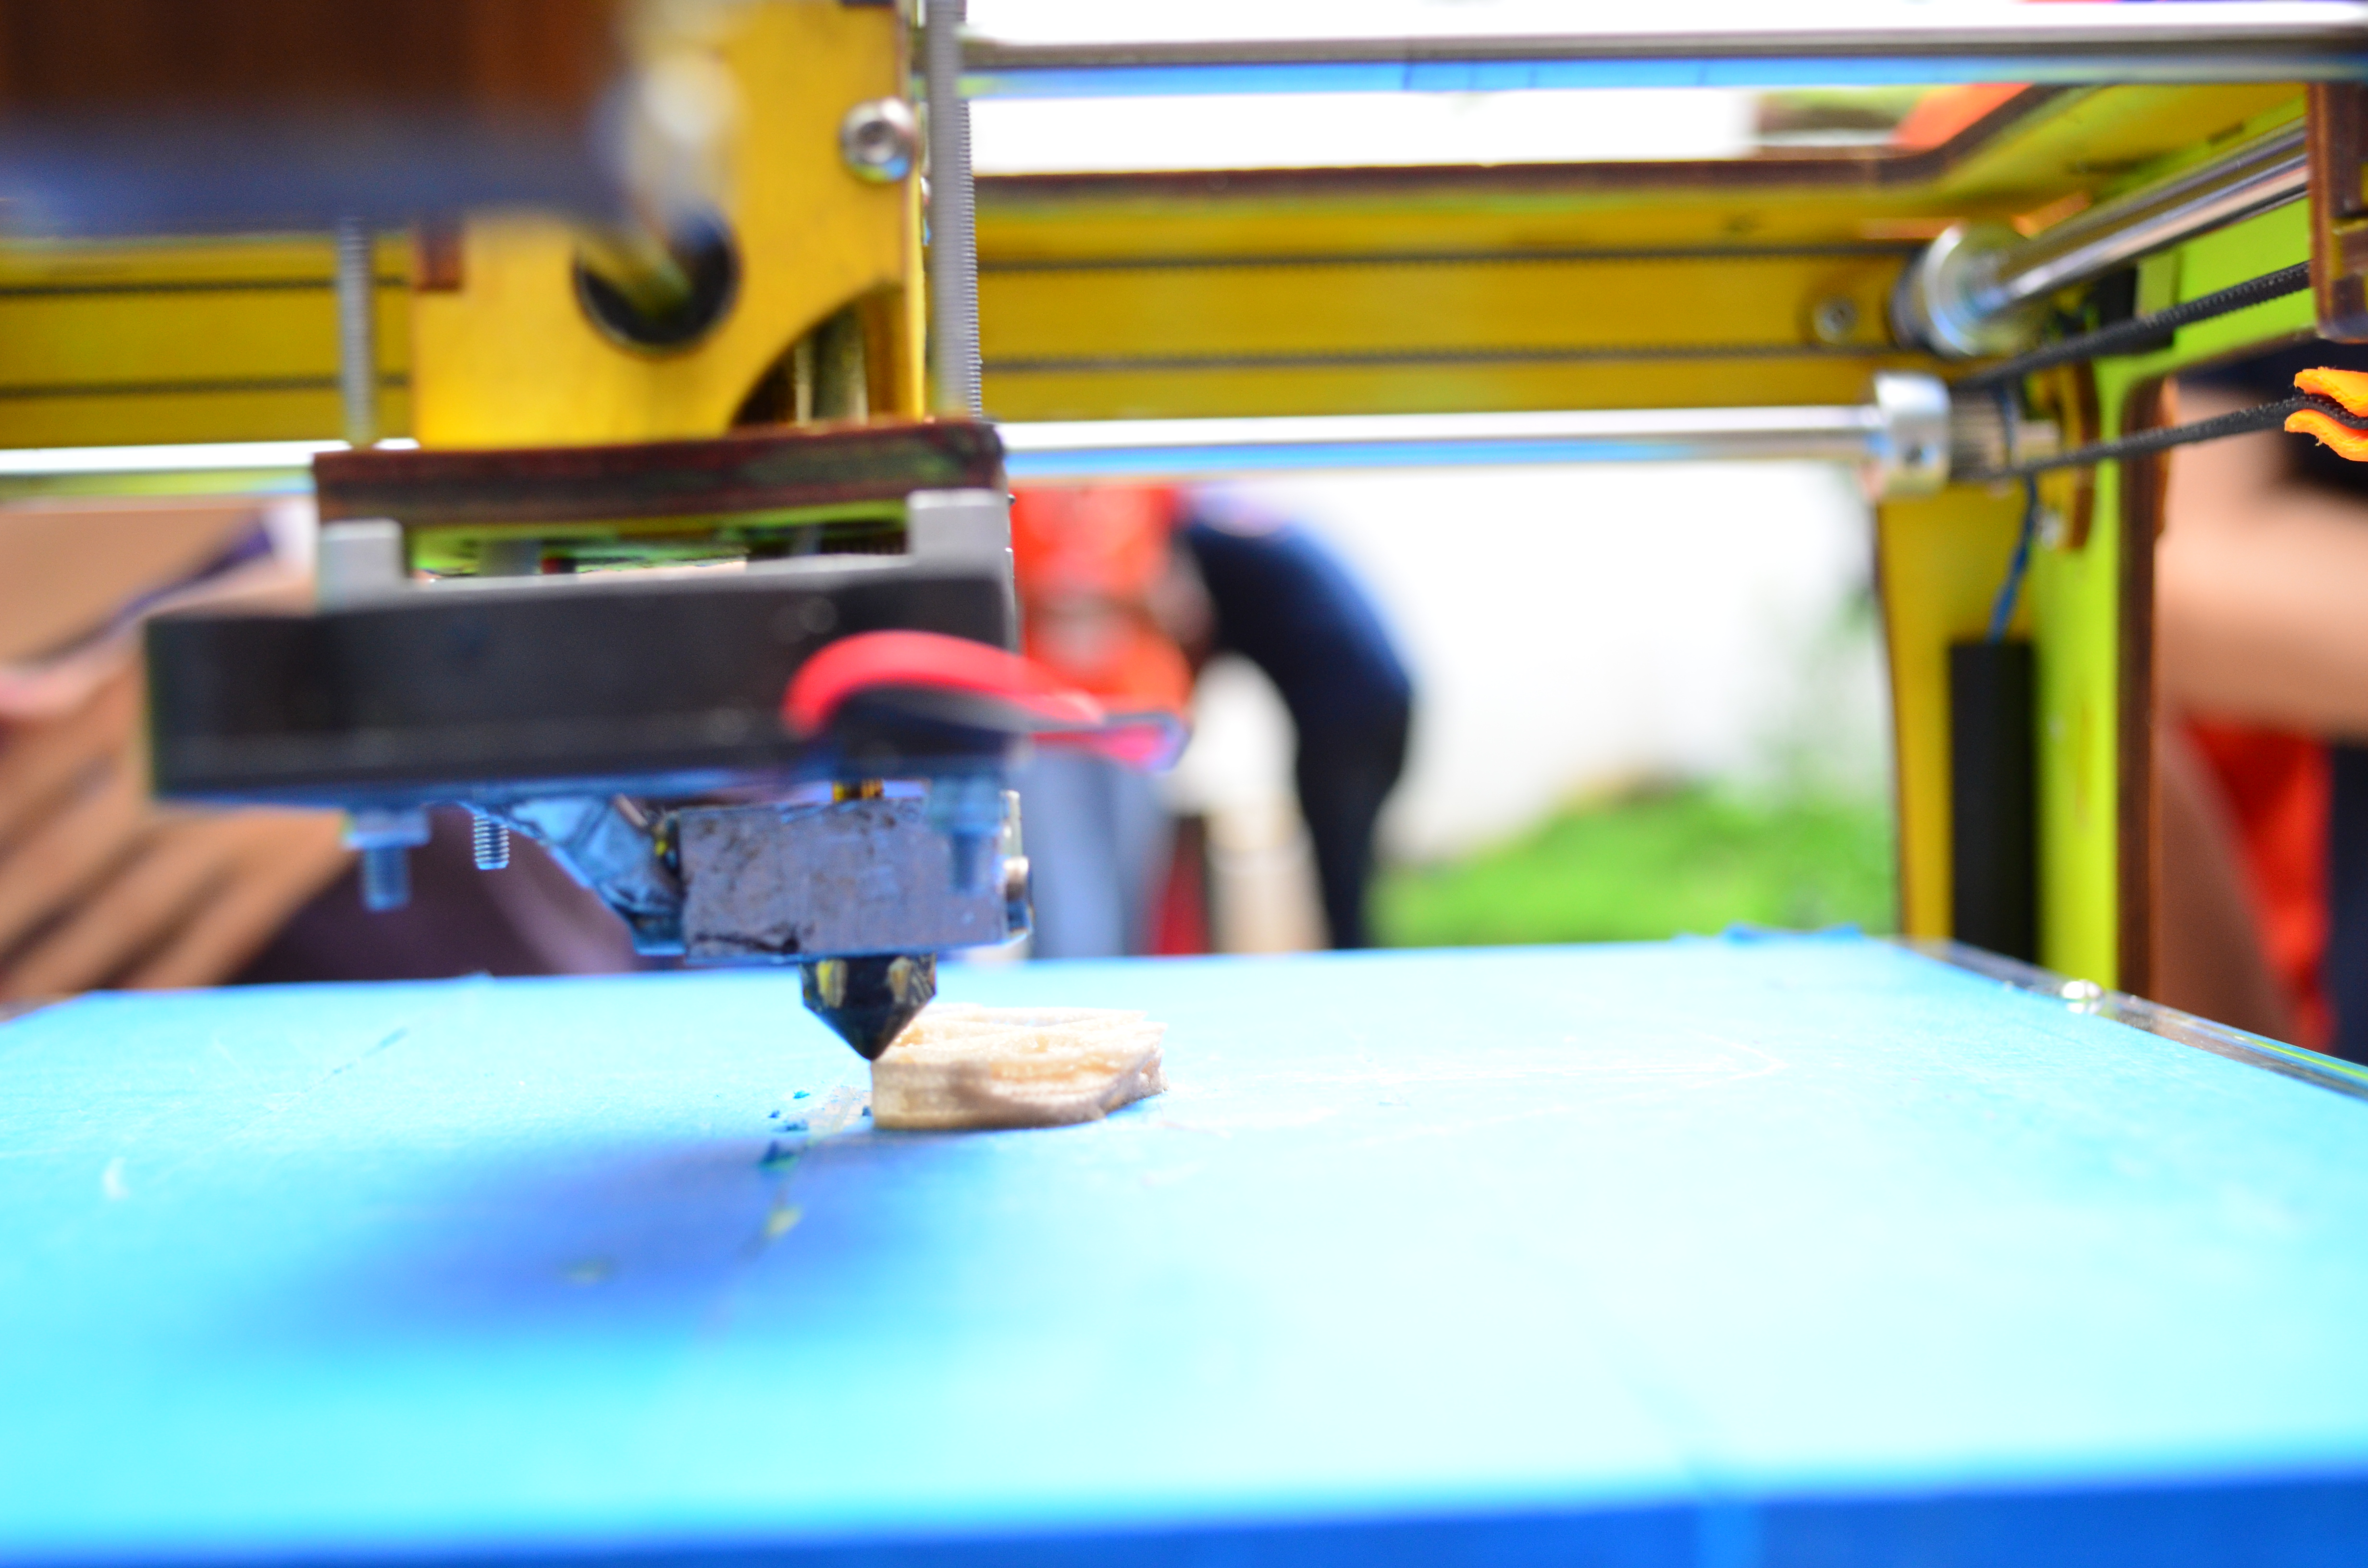 Printing_with_a_3D_printer_at_Makers_Party_Bangalore_2013_12 Why 3D Printing Faces Cybersecurity Risks